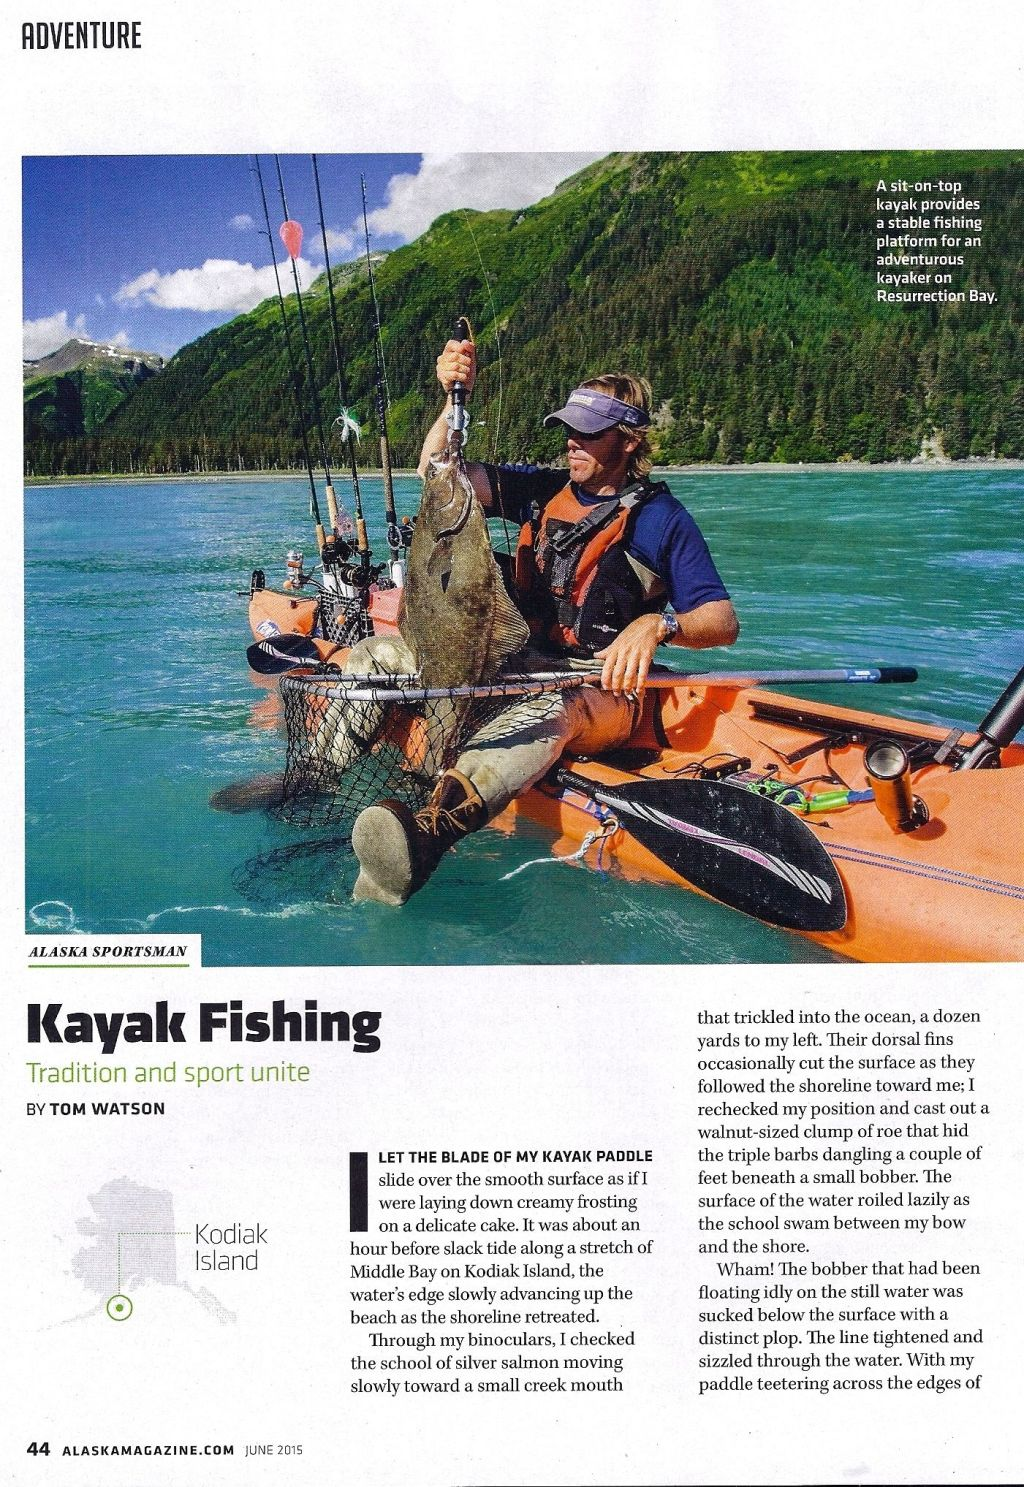 ARTICLE-KAYAK FISHING-1